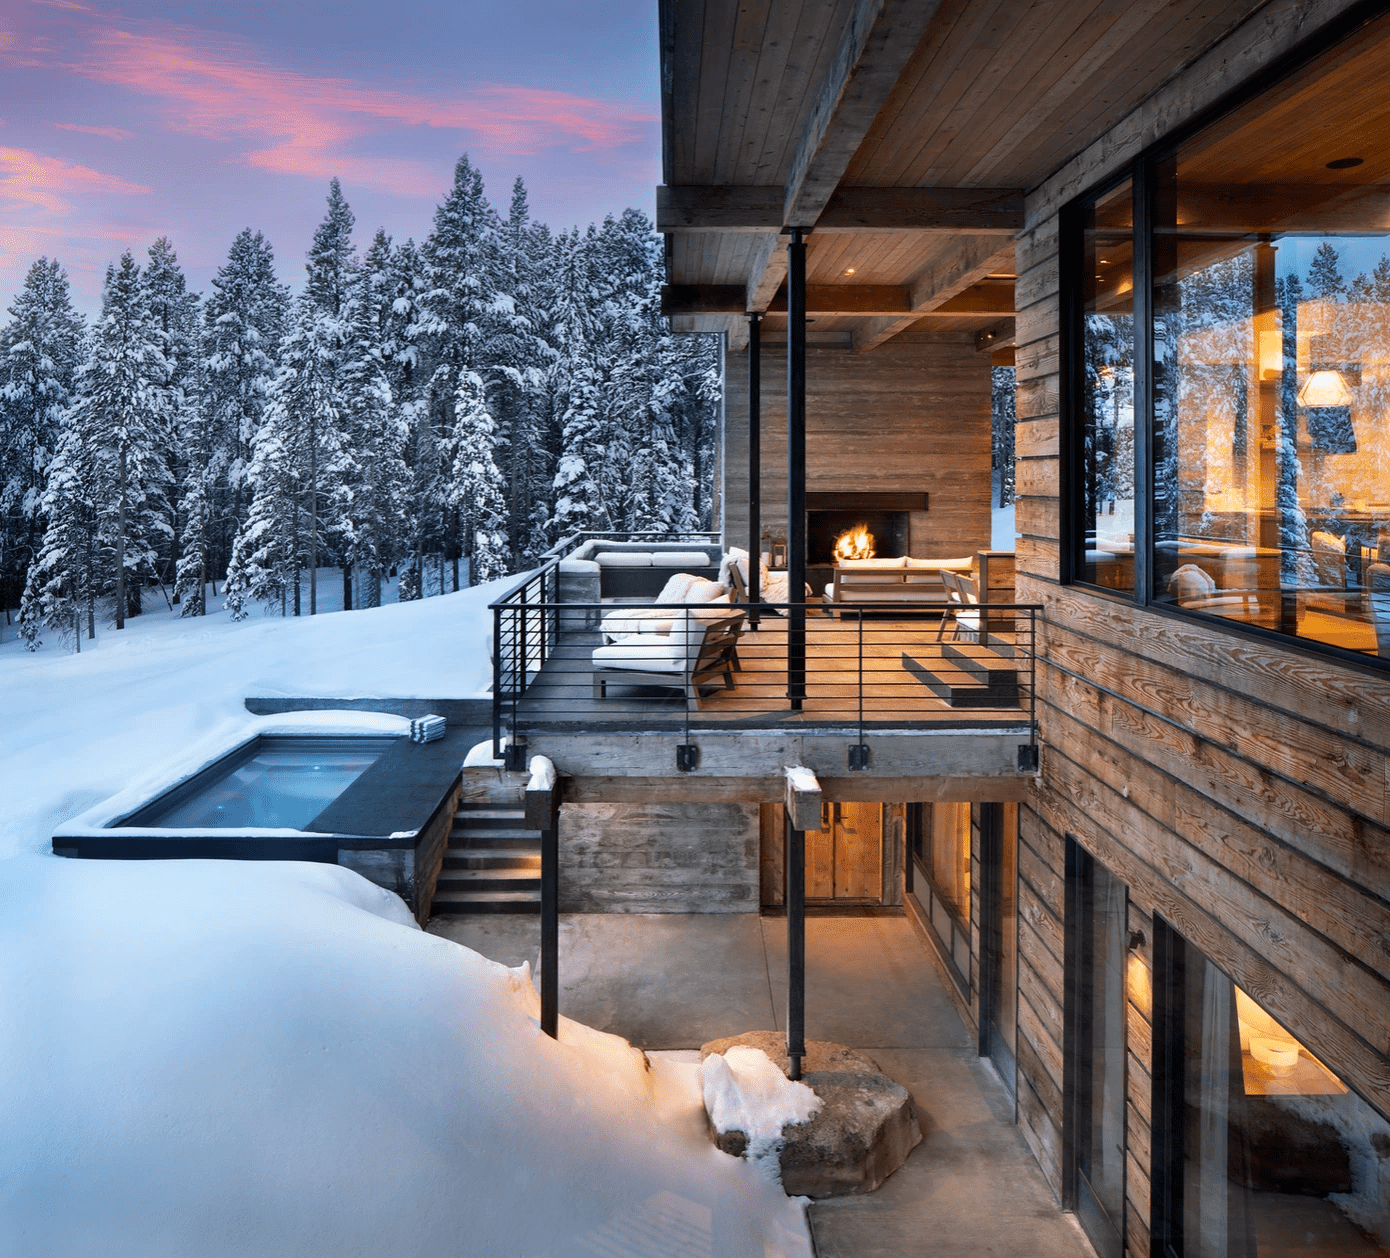 A large covered porch with an outdoor fireplace, situated in the middle of snowy mountains